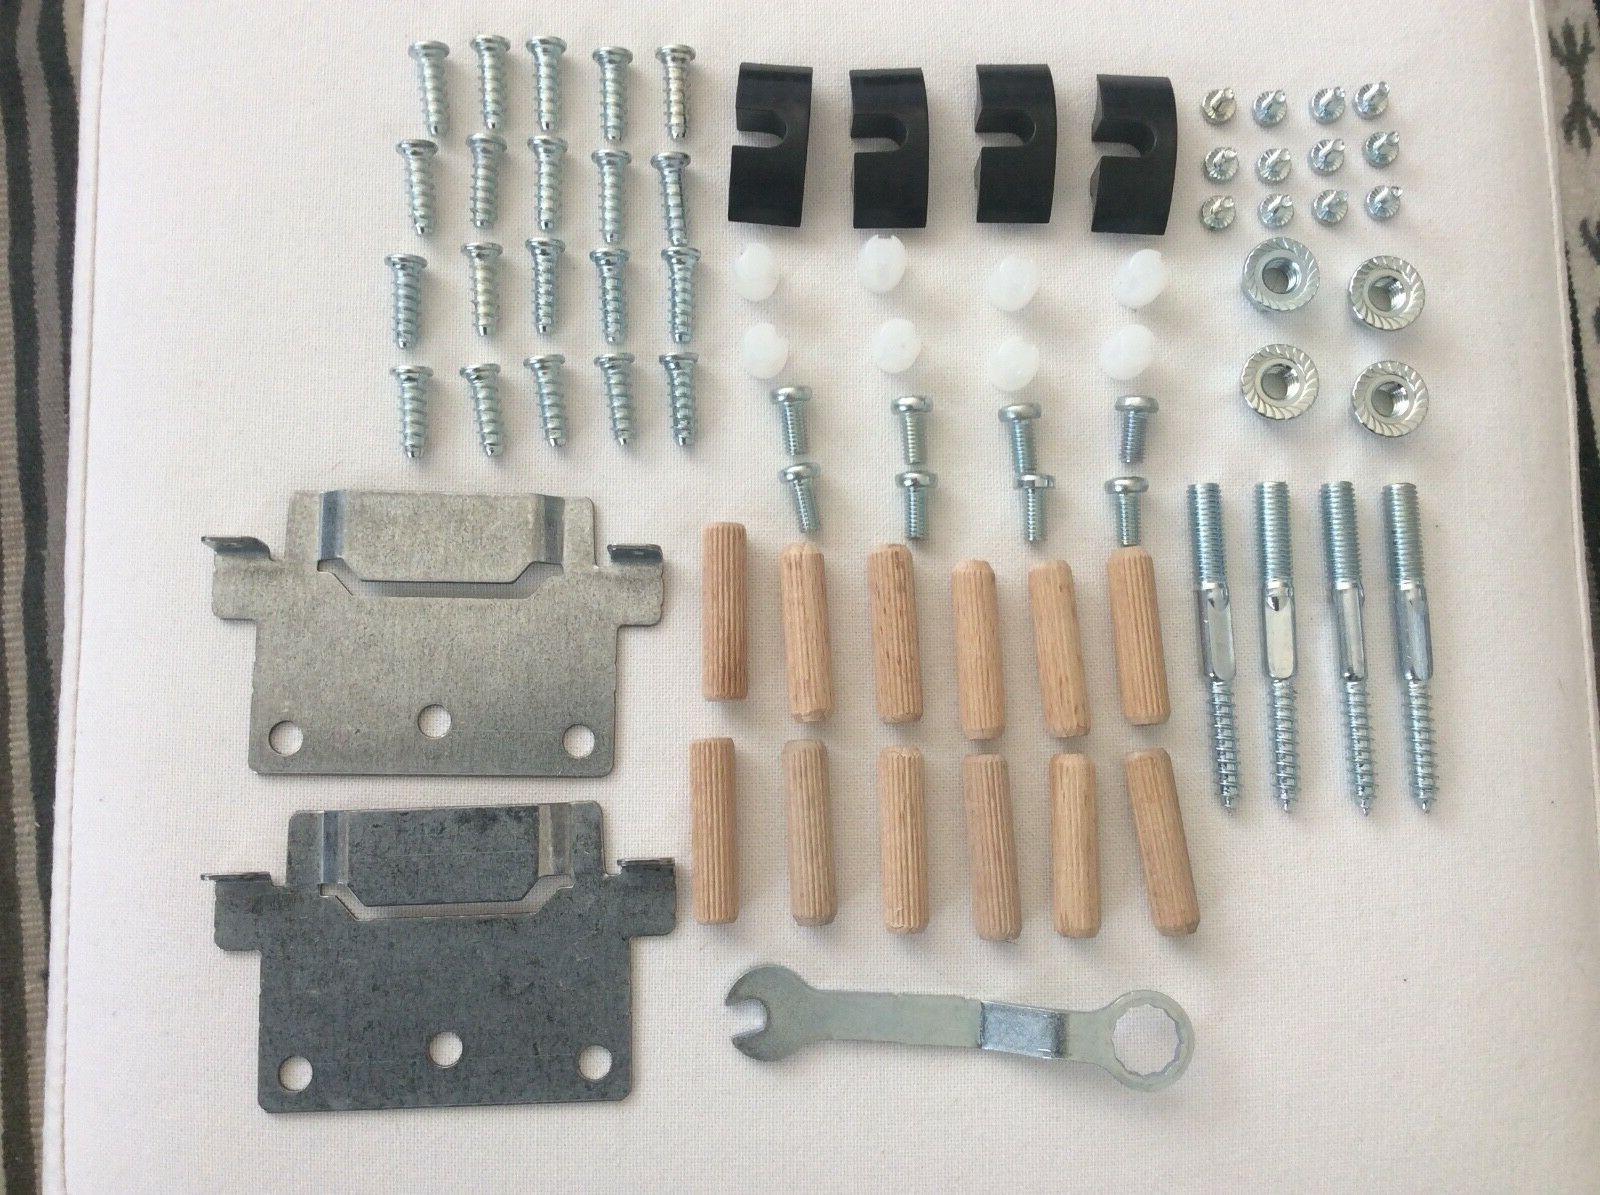 Ikea Malm Bed Frame Replacement Parts Hardware Low